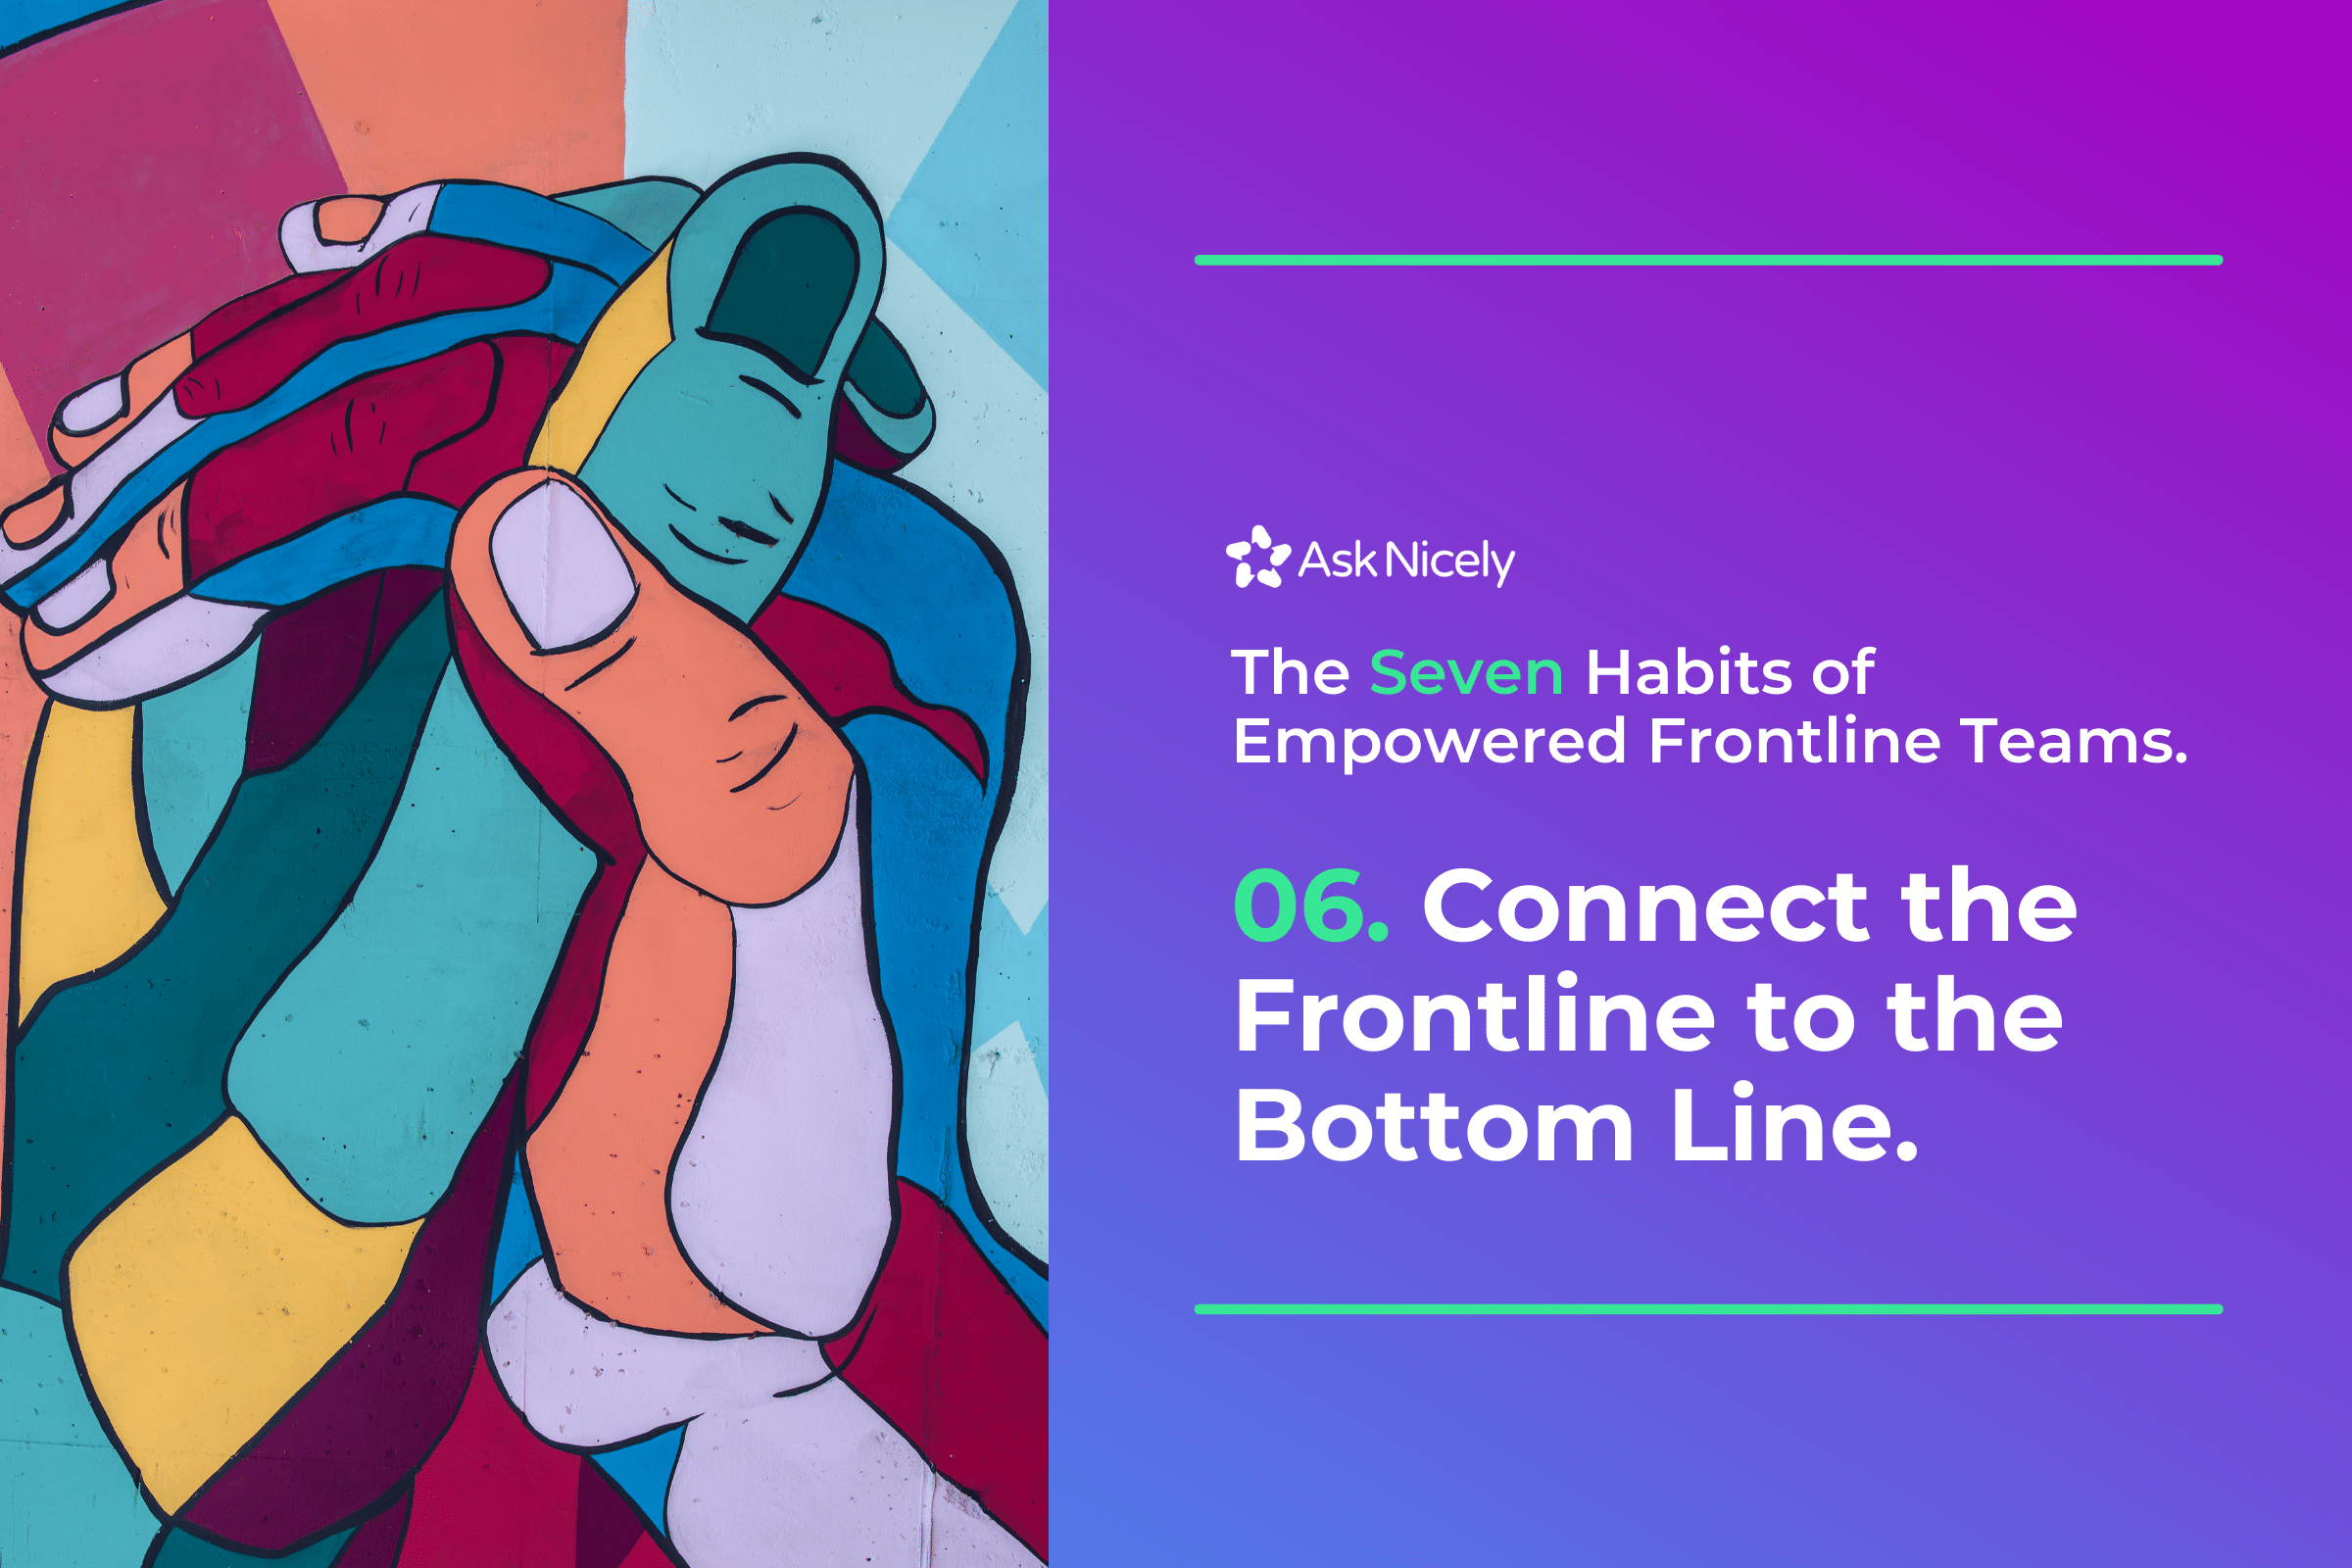 Connect the Frontline to the Bottom Line: The Seven Habits of Empowered Frontline Teams.